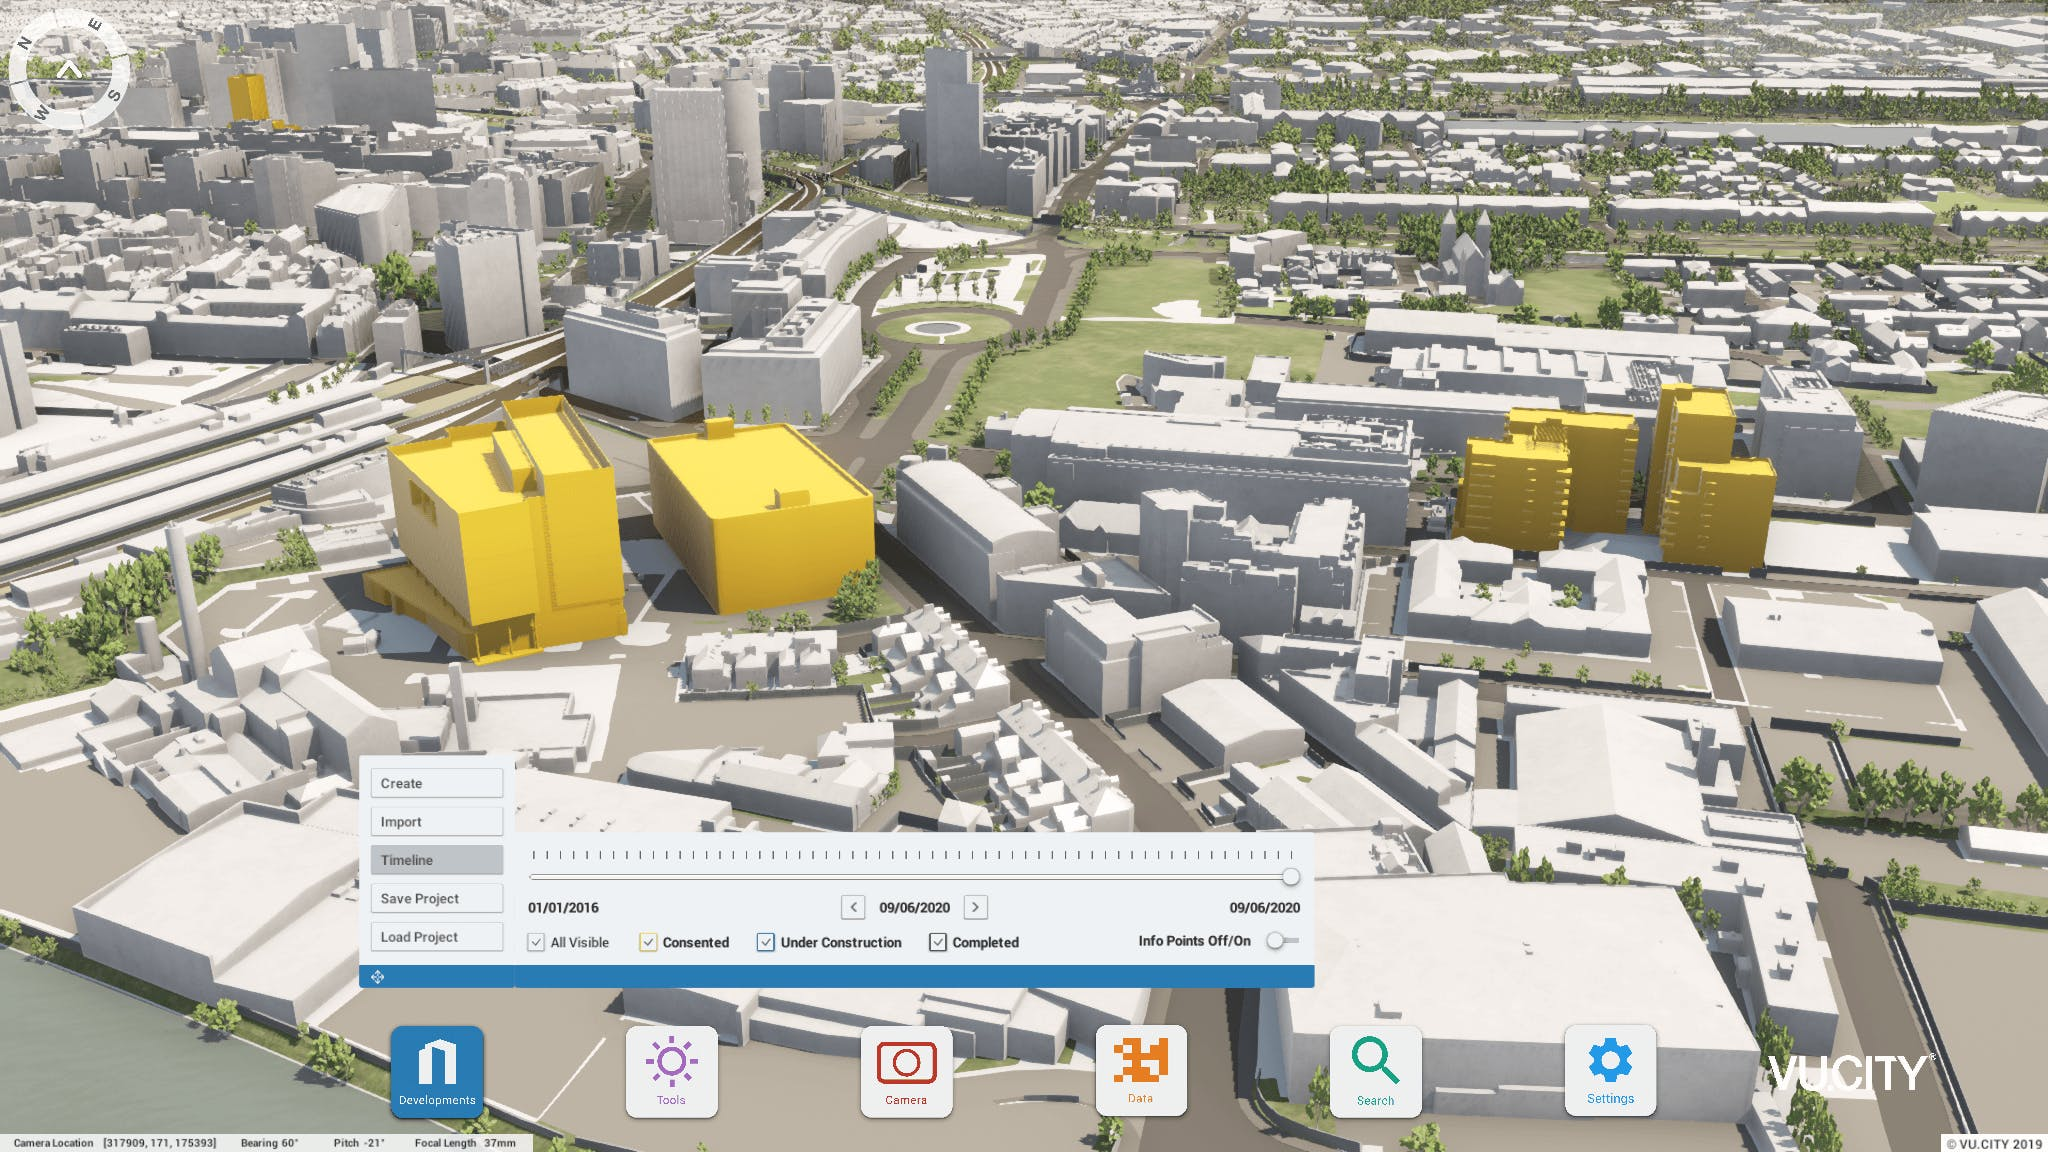 Add, search and explore existing and proposed developments